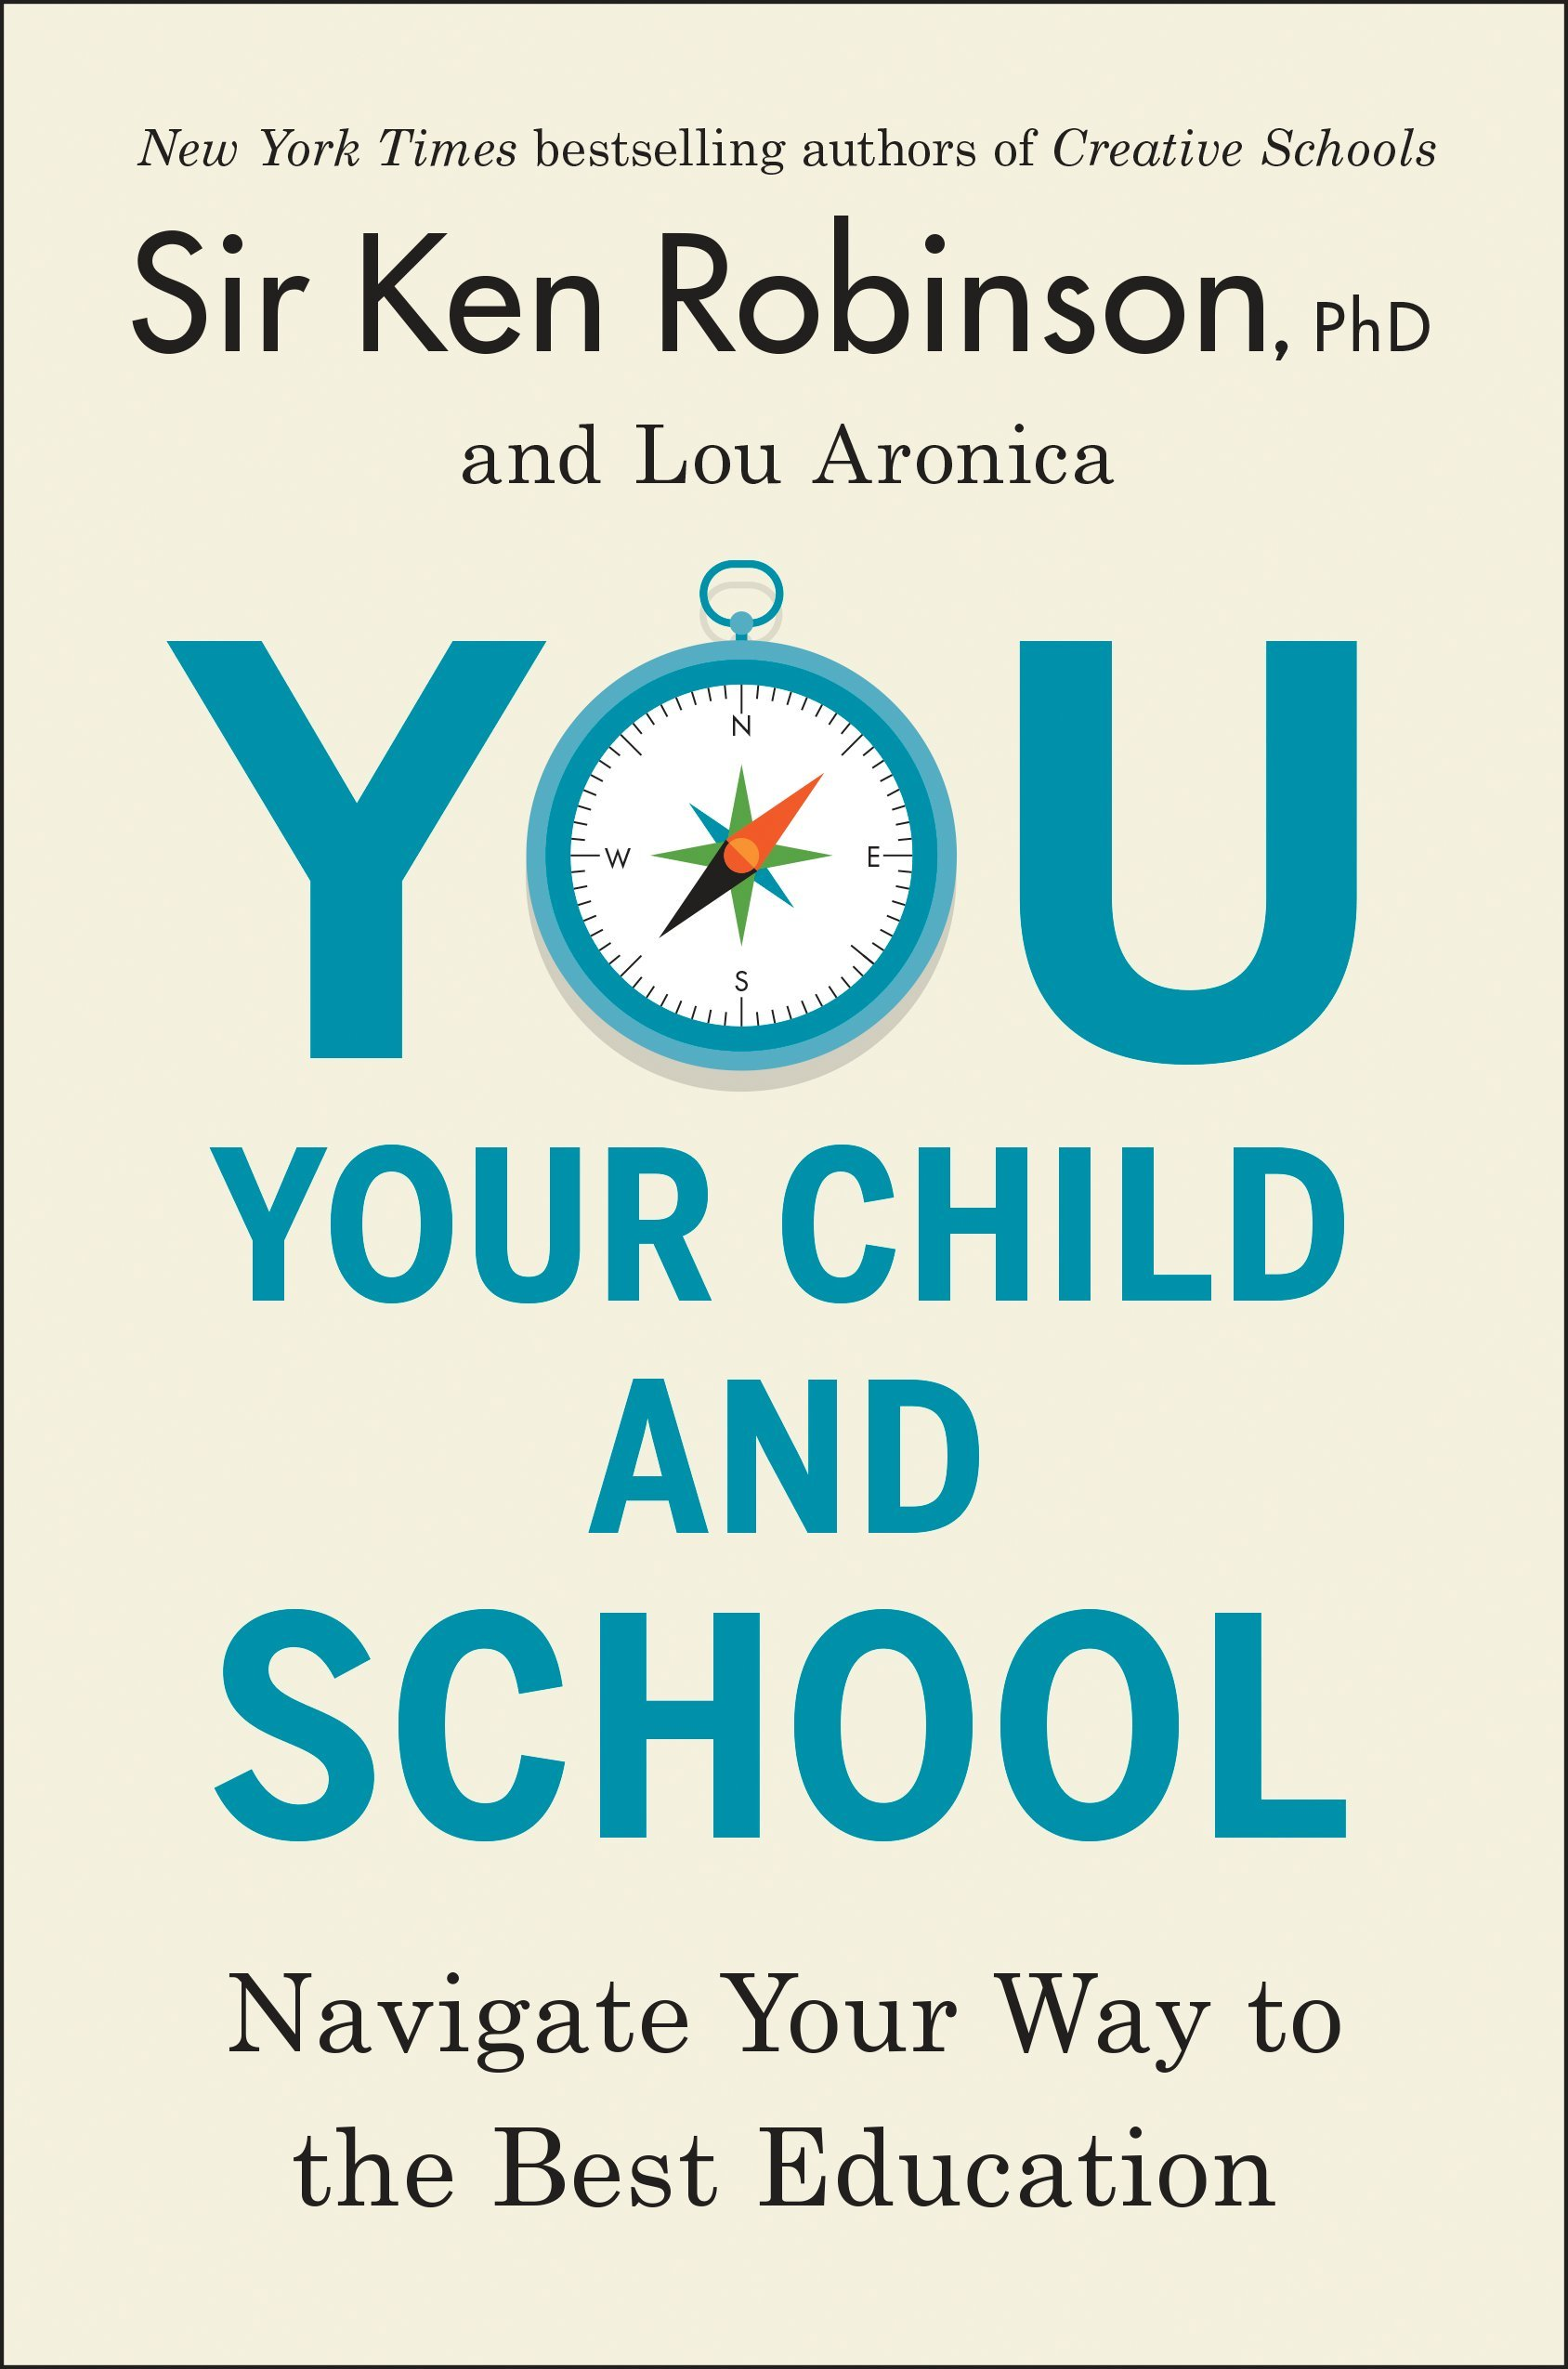 You your child and school navigate your way to the best you your child and school navigate your way to the best education sir ken robinson phd lou aronica 9780670016723 amazon books 1betcityfo Gallery